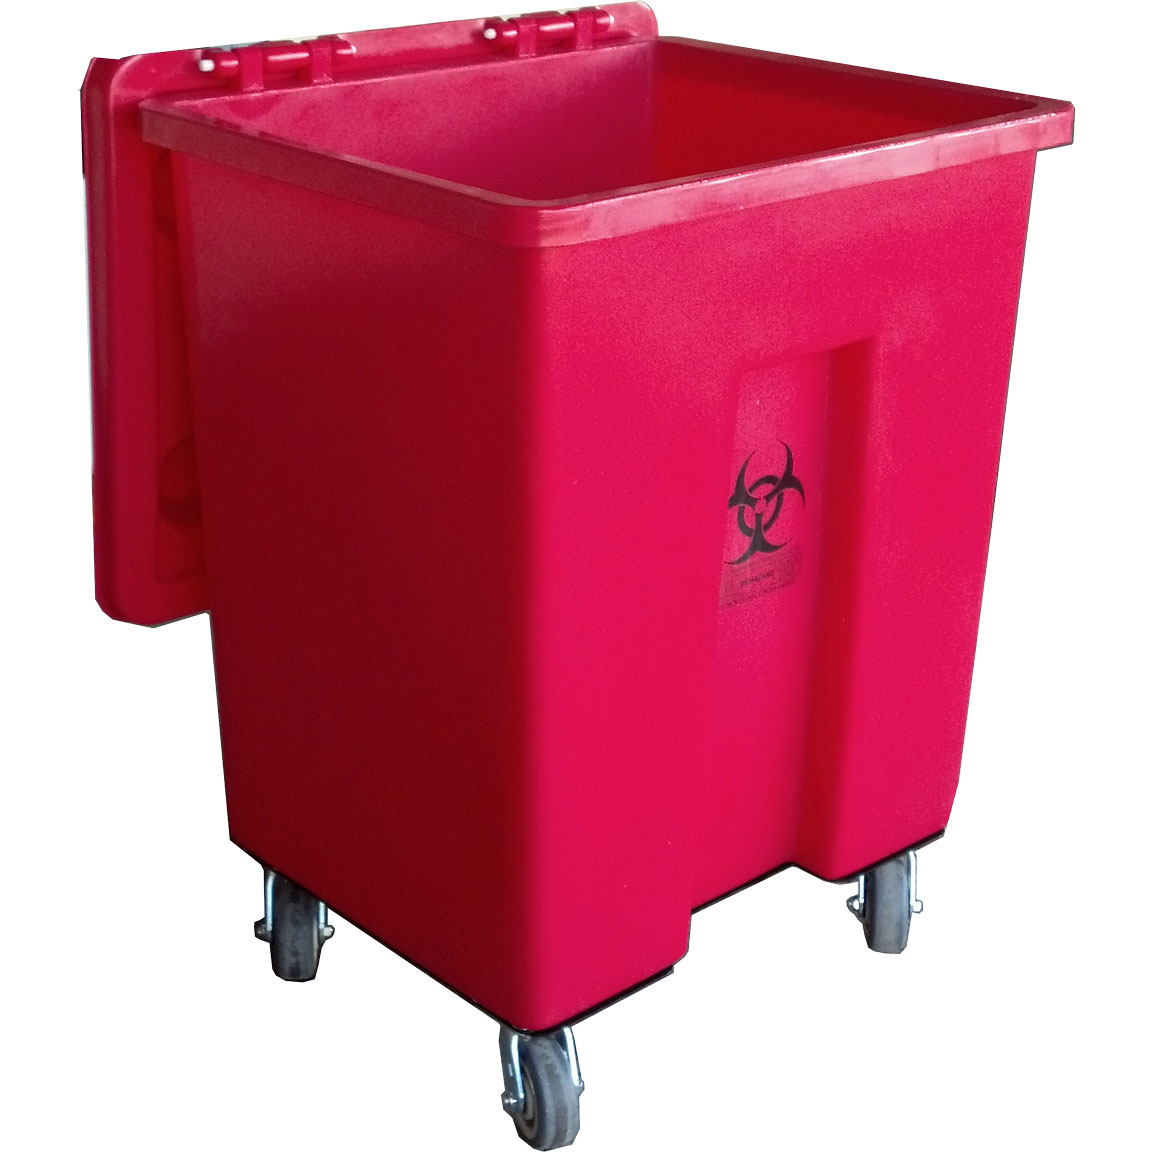 MW-100 - MW Series 100 Gallon Regulated Medical Waste Cart - 27 x 23.5 x 38